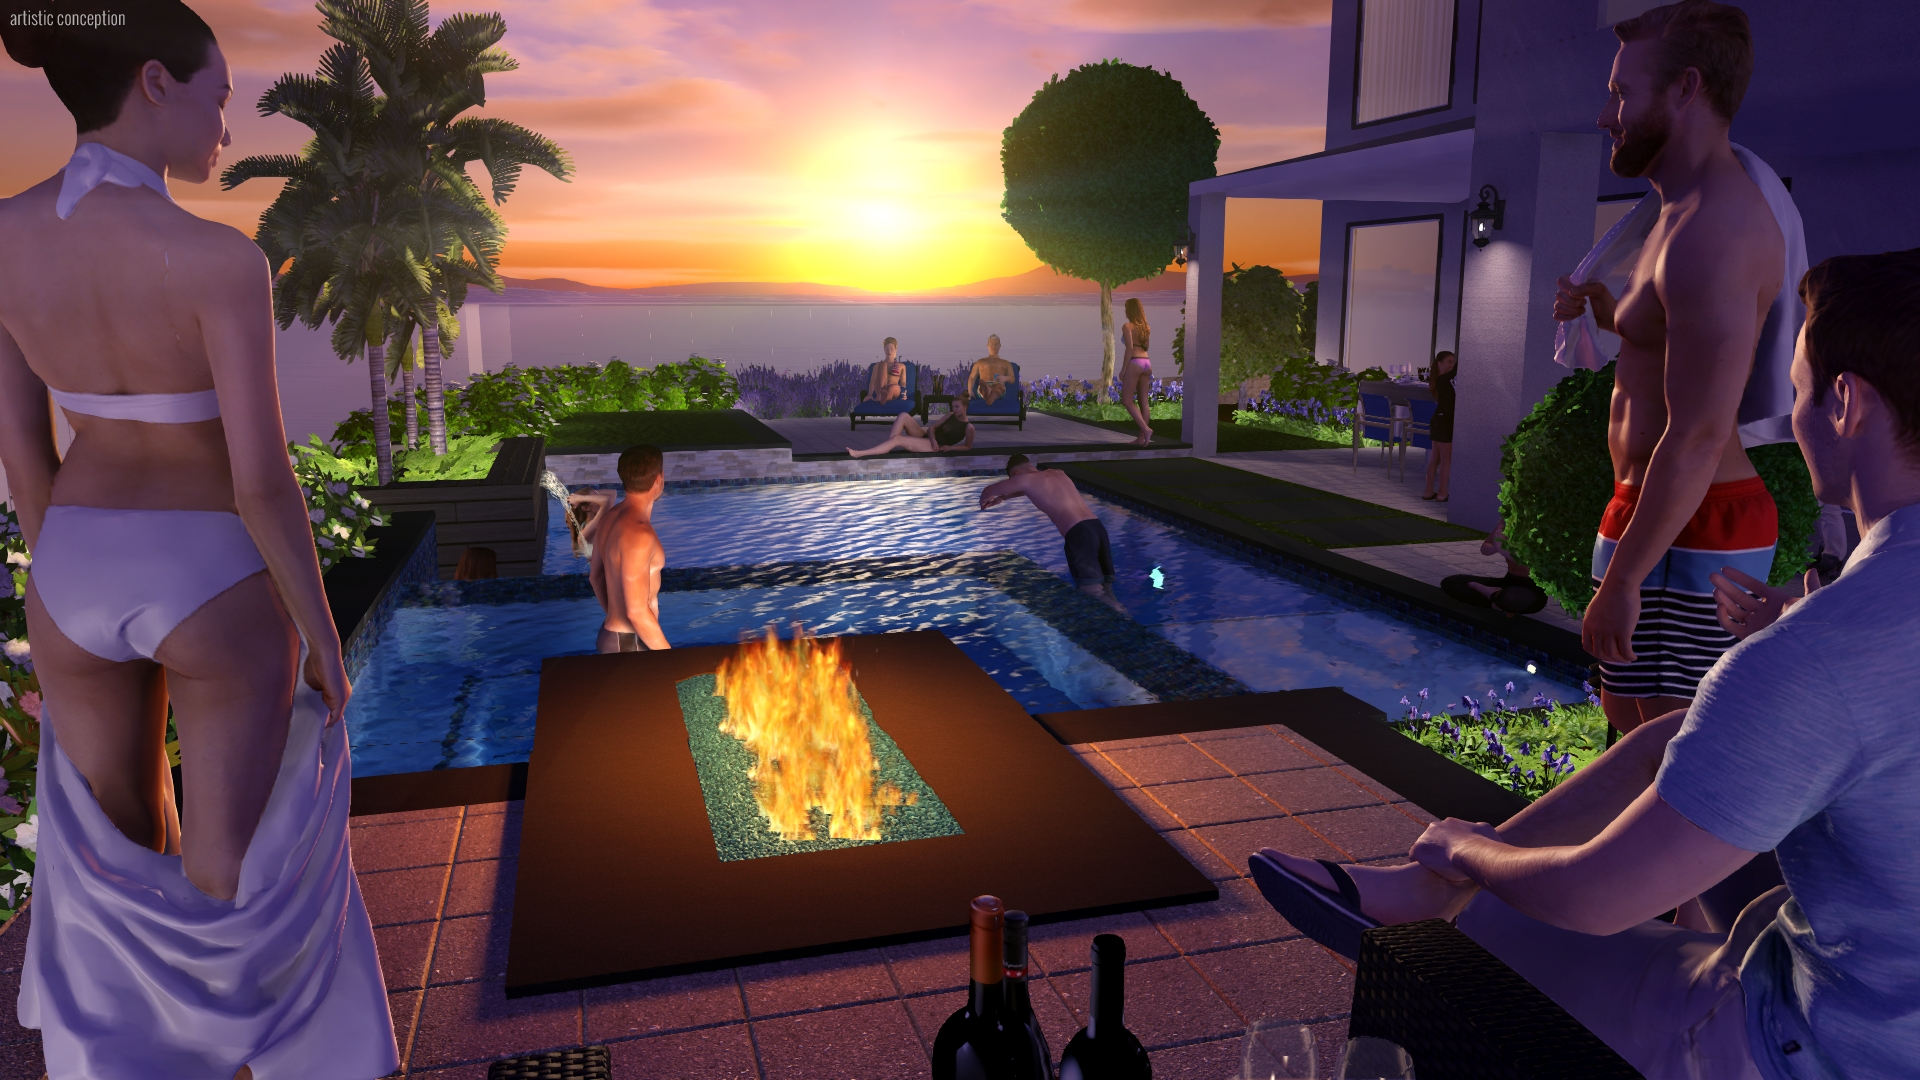 a computer aided design rendering of a group of people around a contemporary pool at sunset